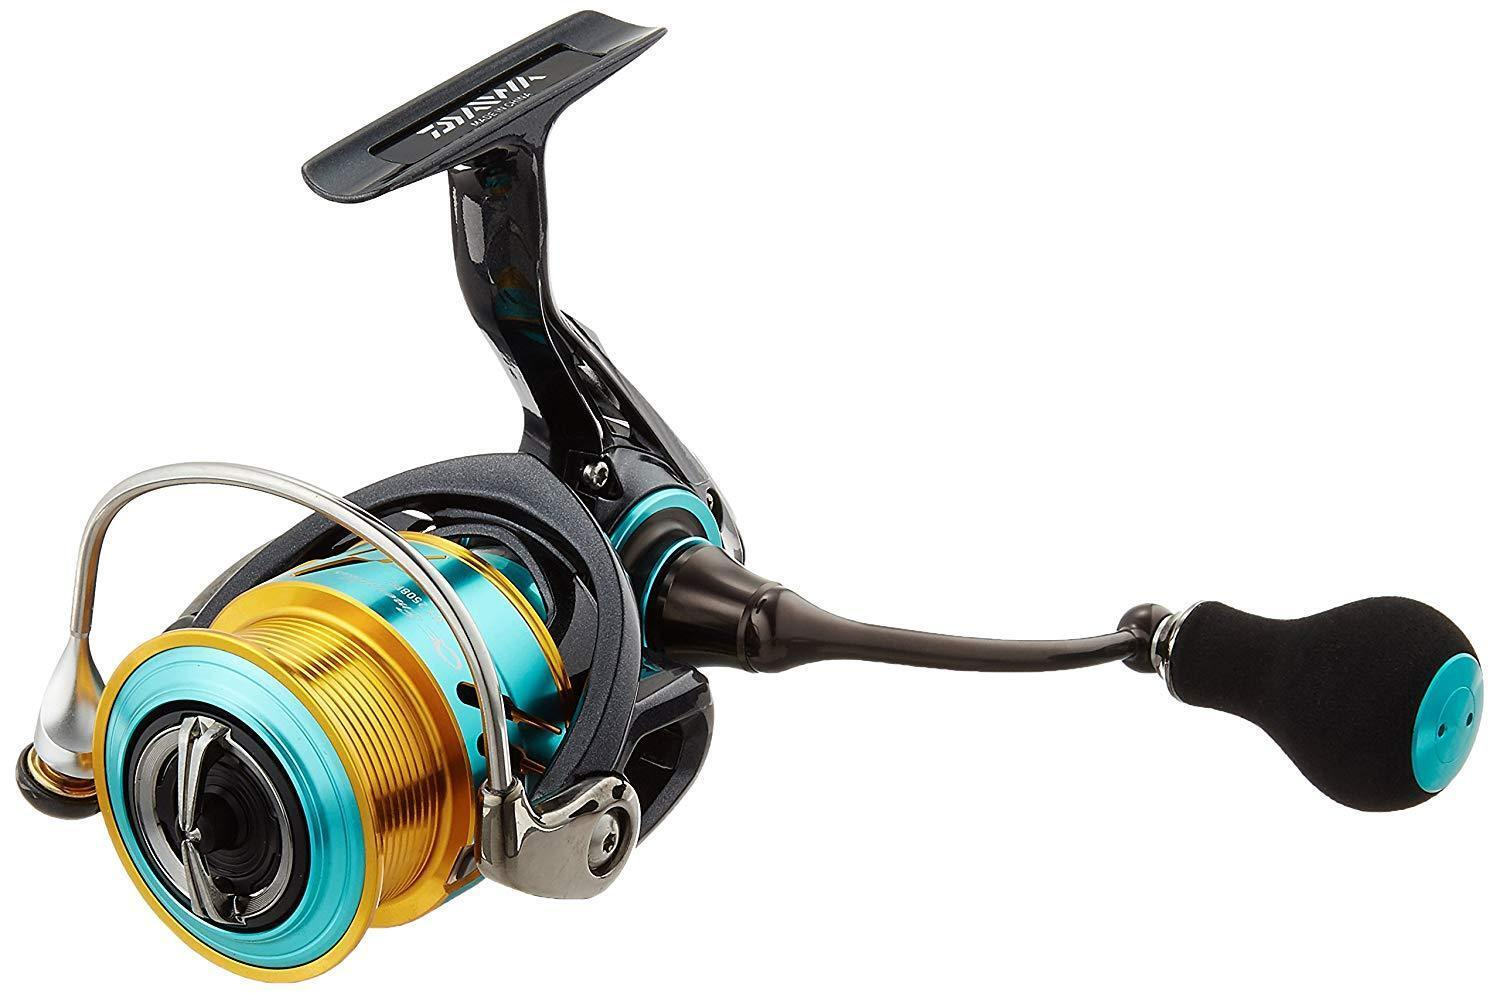 Daiwa 17 EMERALDAS MX 2508PE Spinning Reel MAGSEELD ABS II SALT WATER New in Box